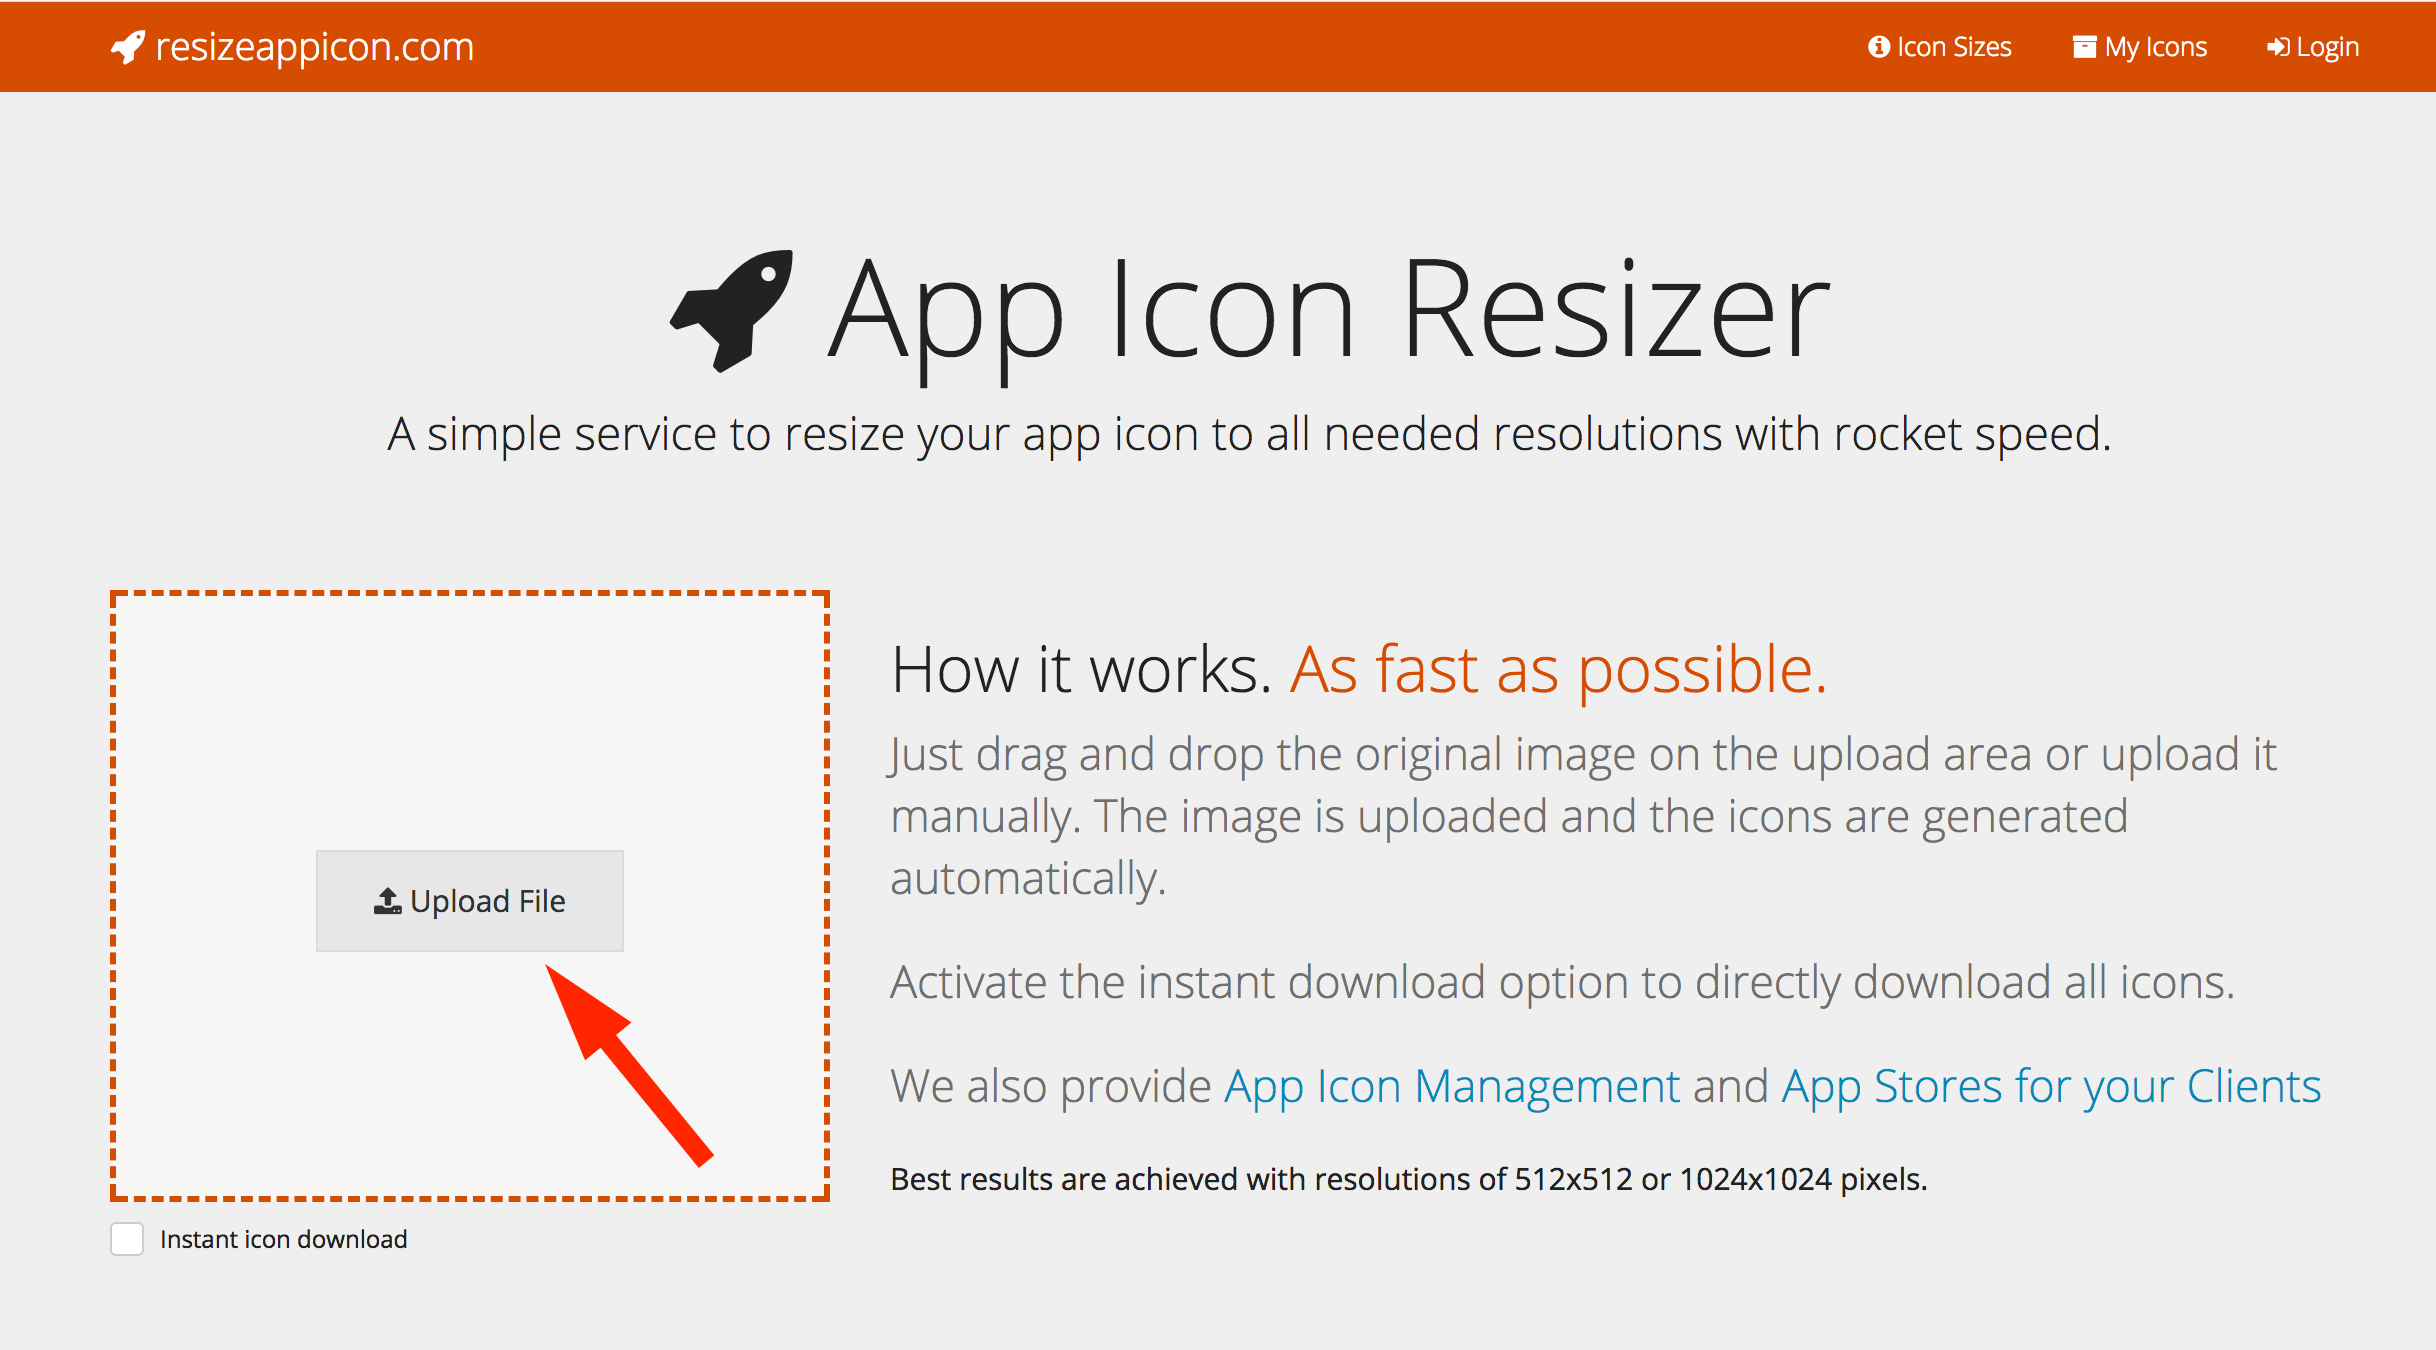 Upload your images to the App Icon Resizer